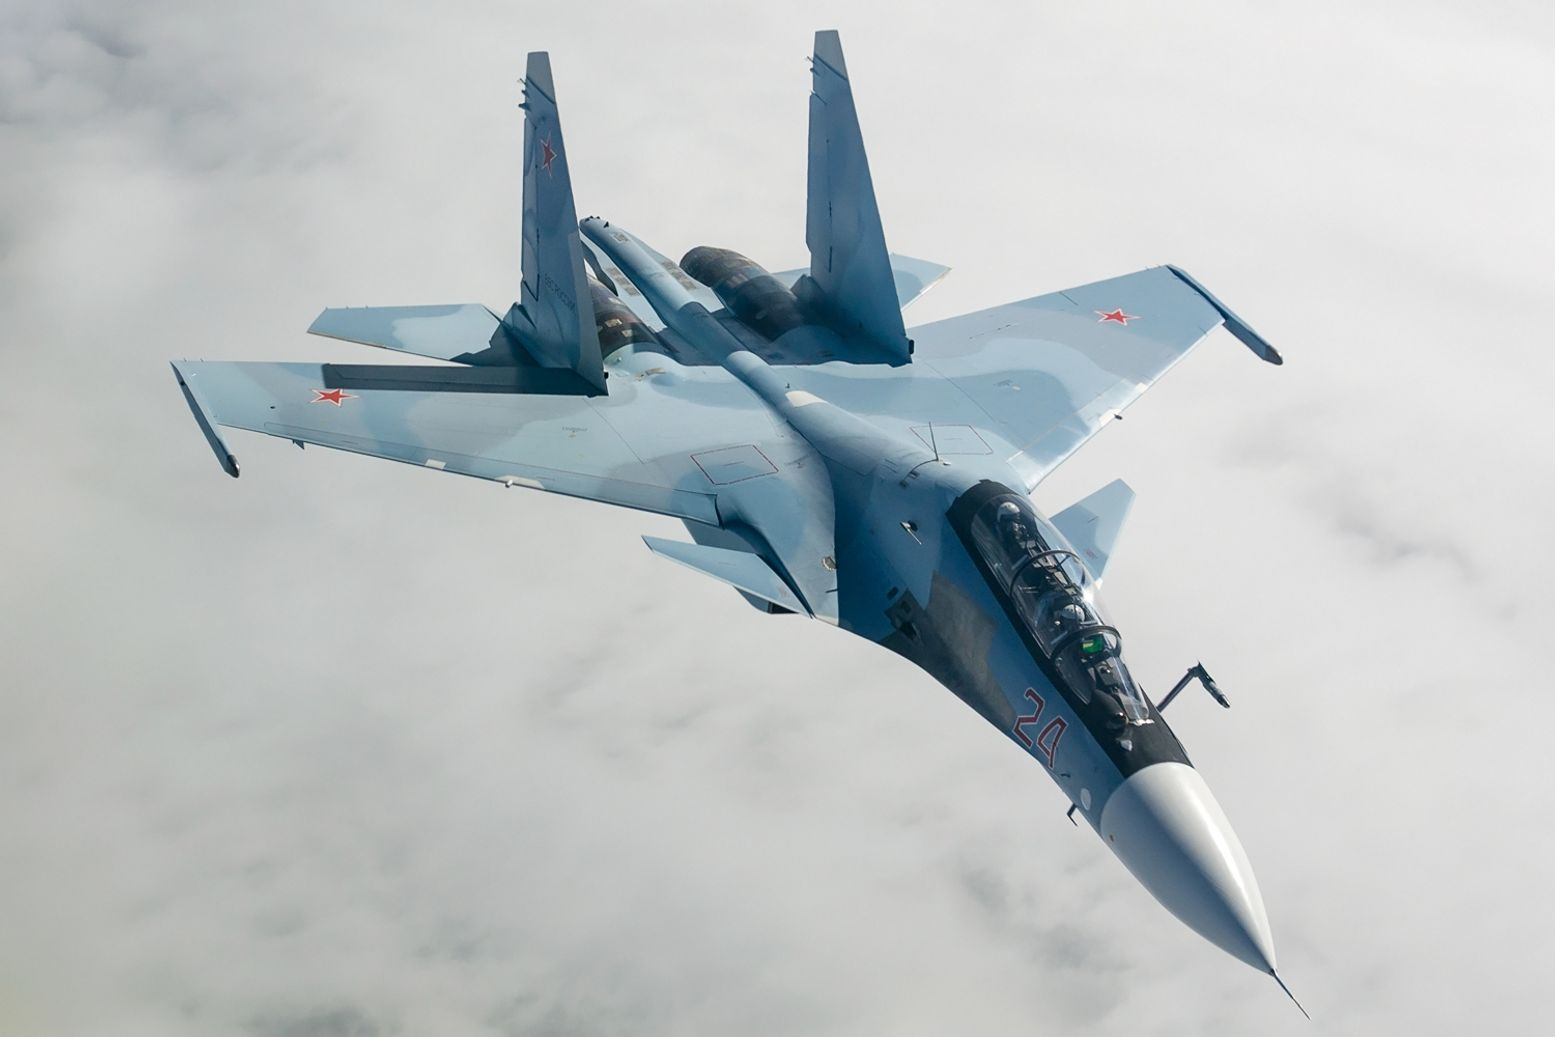 One Word Why Iran Can't Buy Russian Flanker Fighter Jets: Sanctions